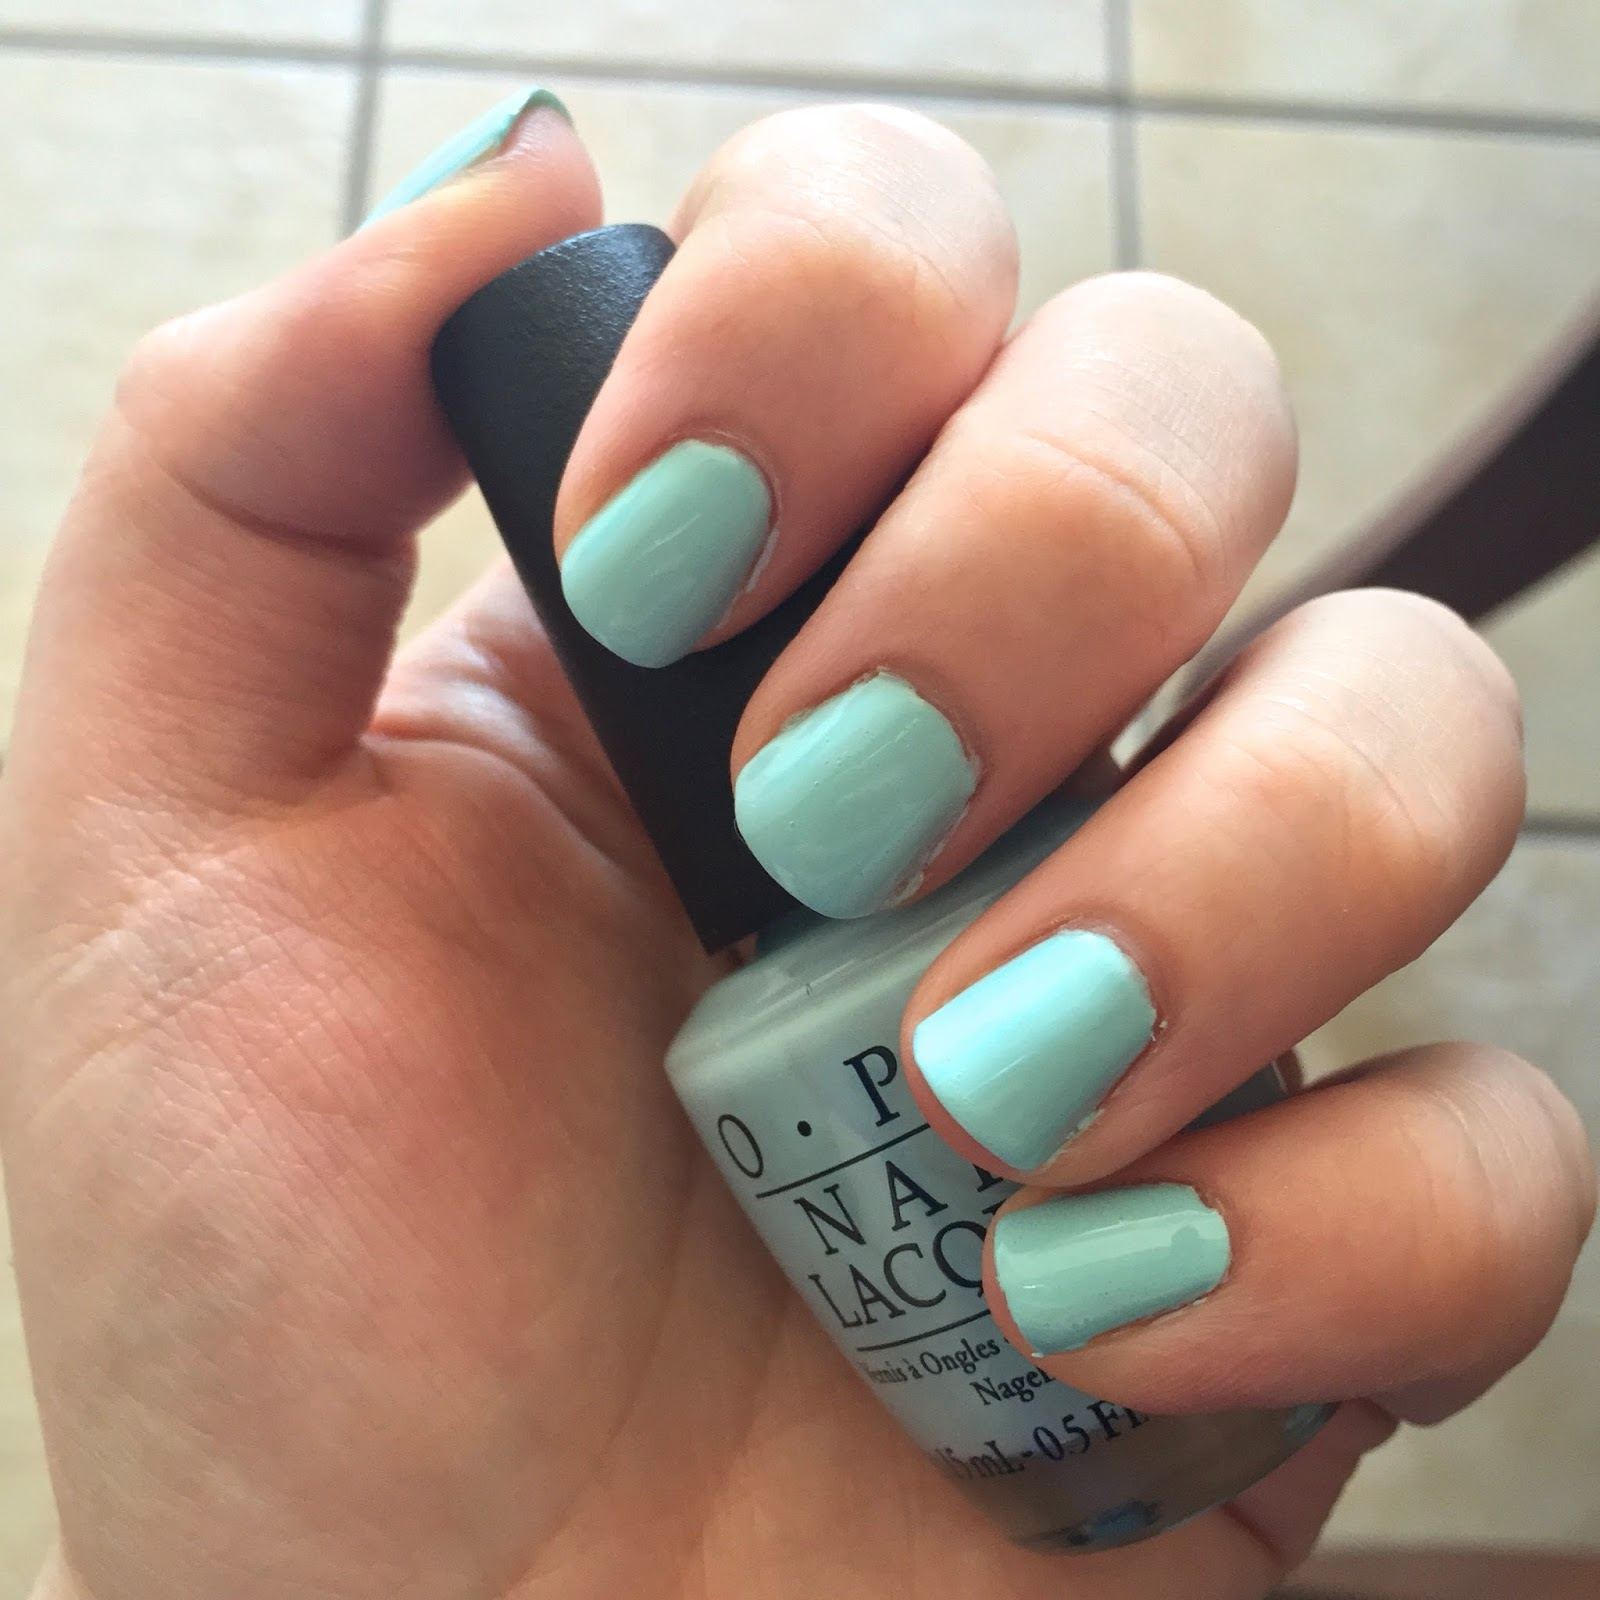 NOTD: OPI Gelato on my Mind